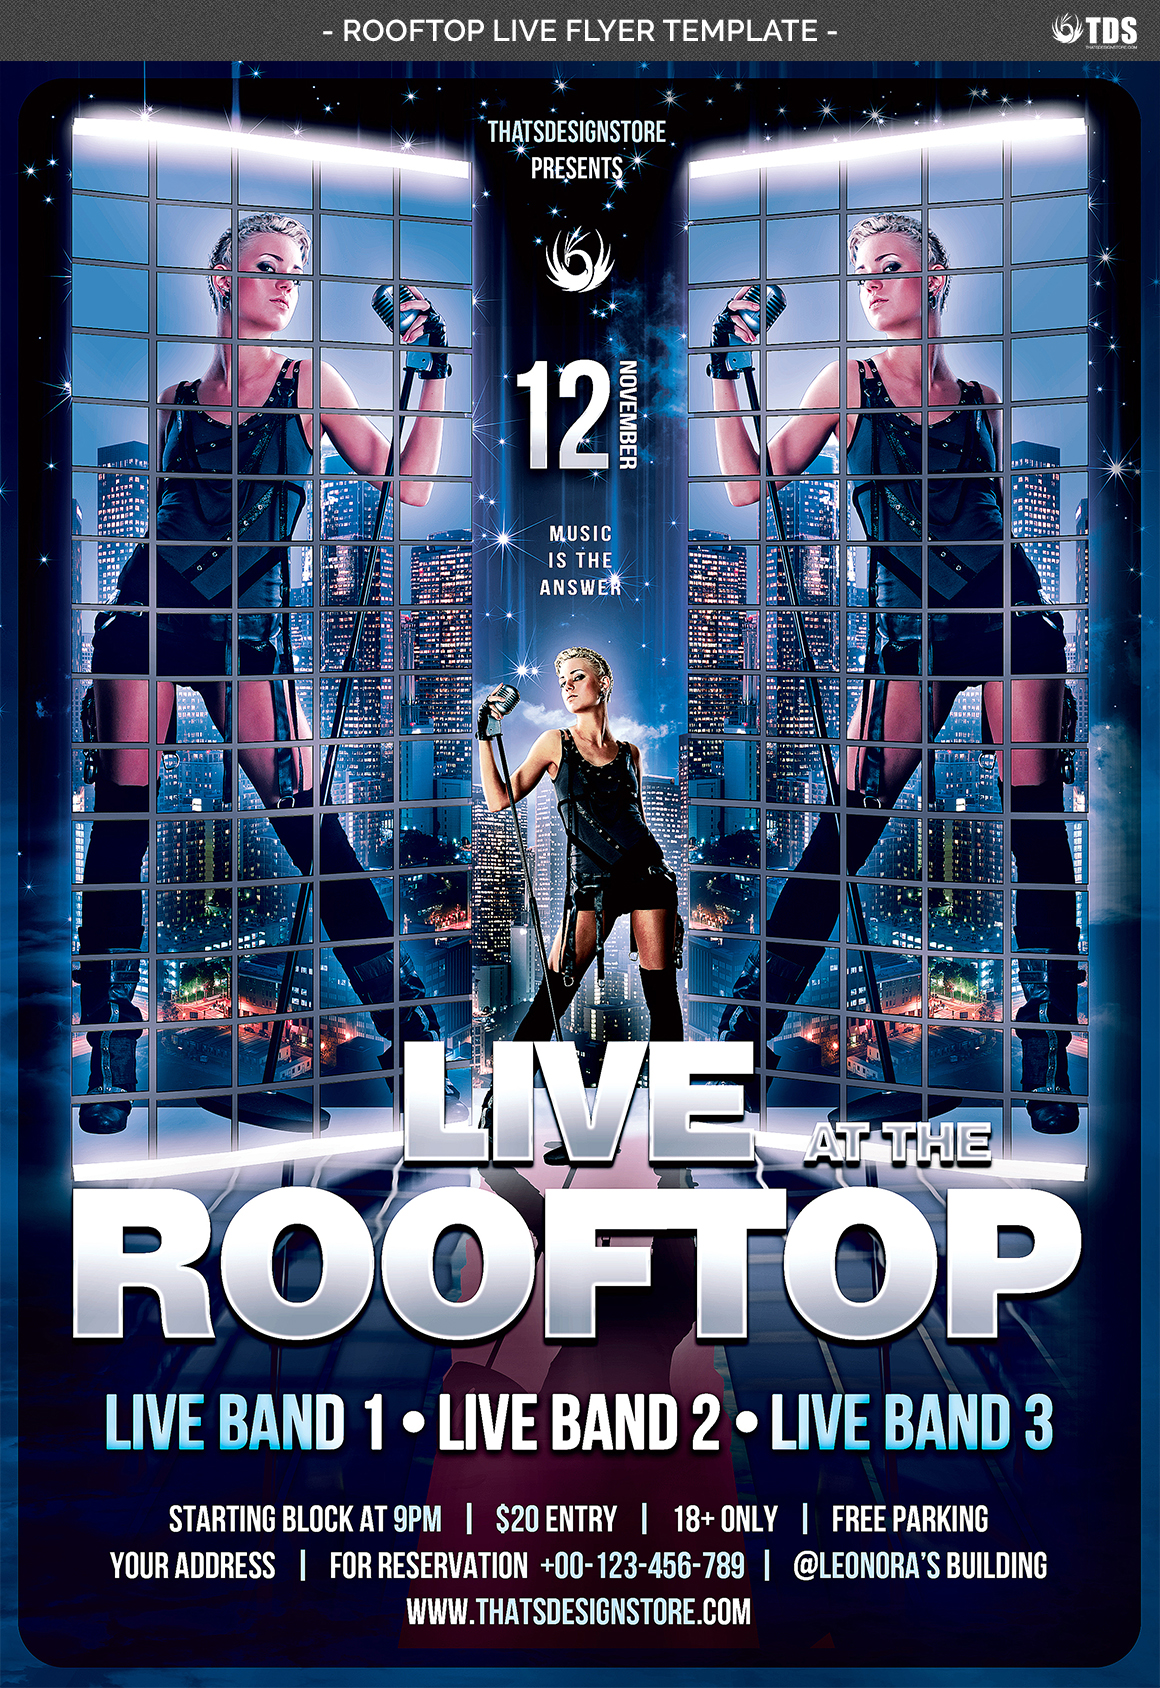 Rooftop Live Flyer Template example image 4